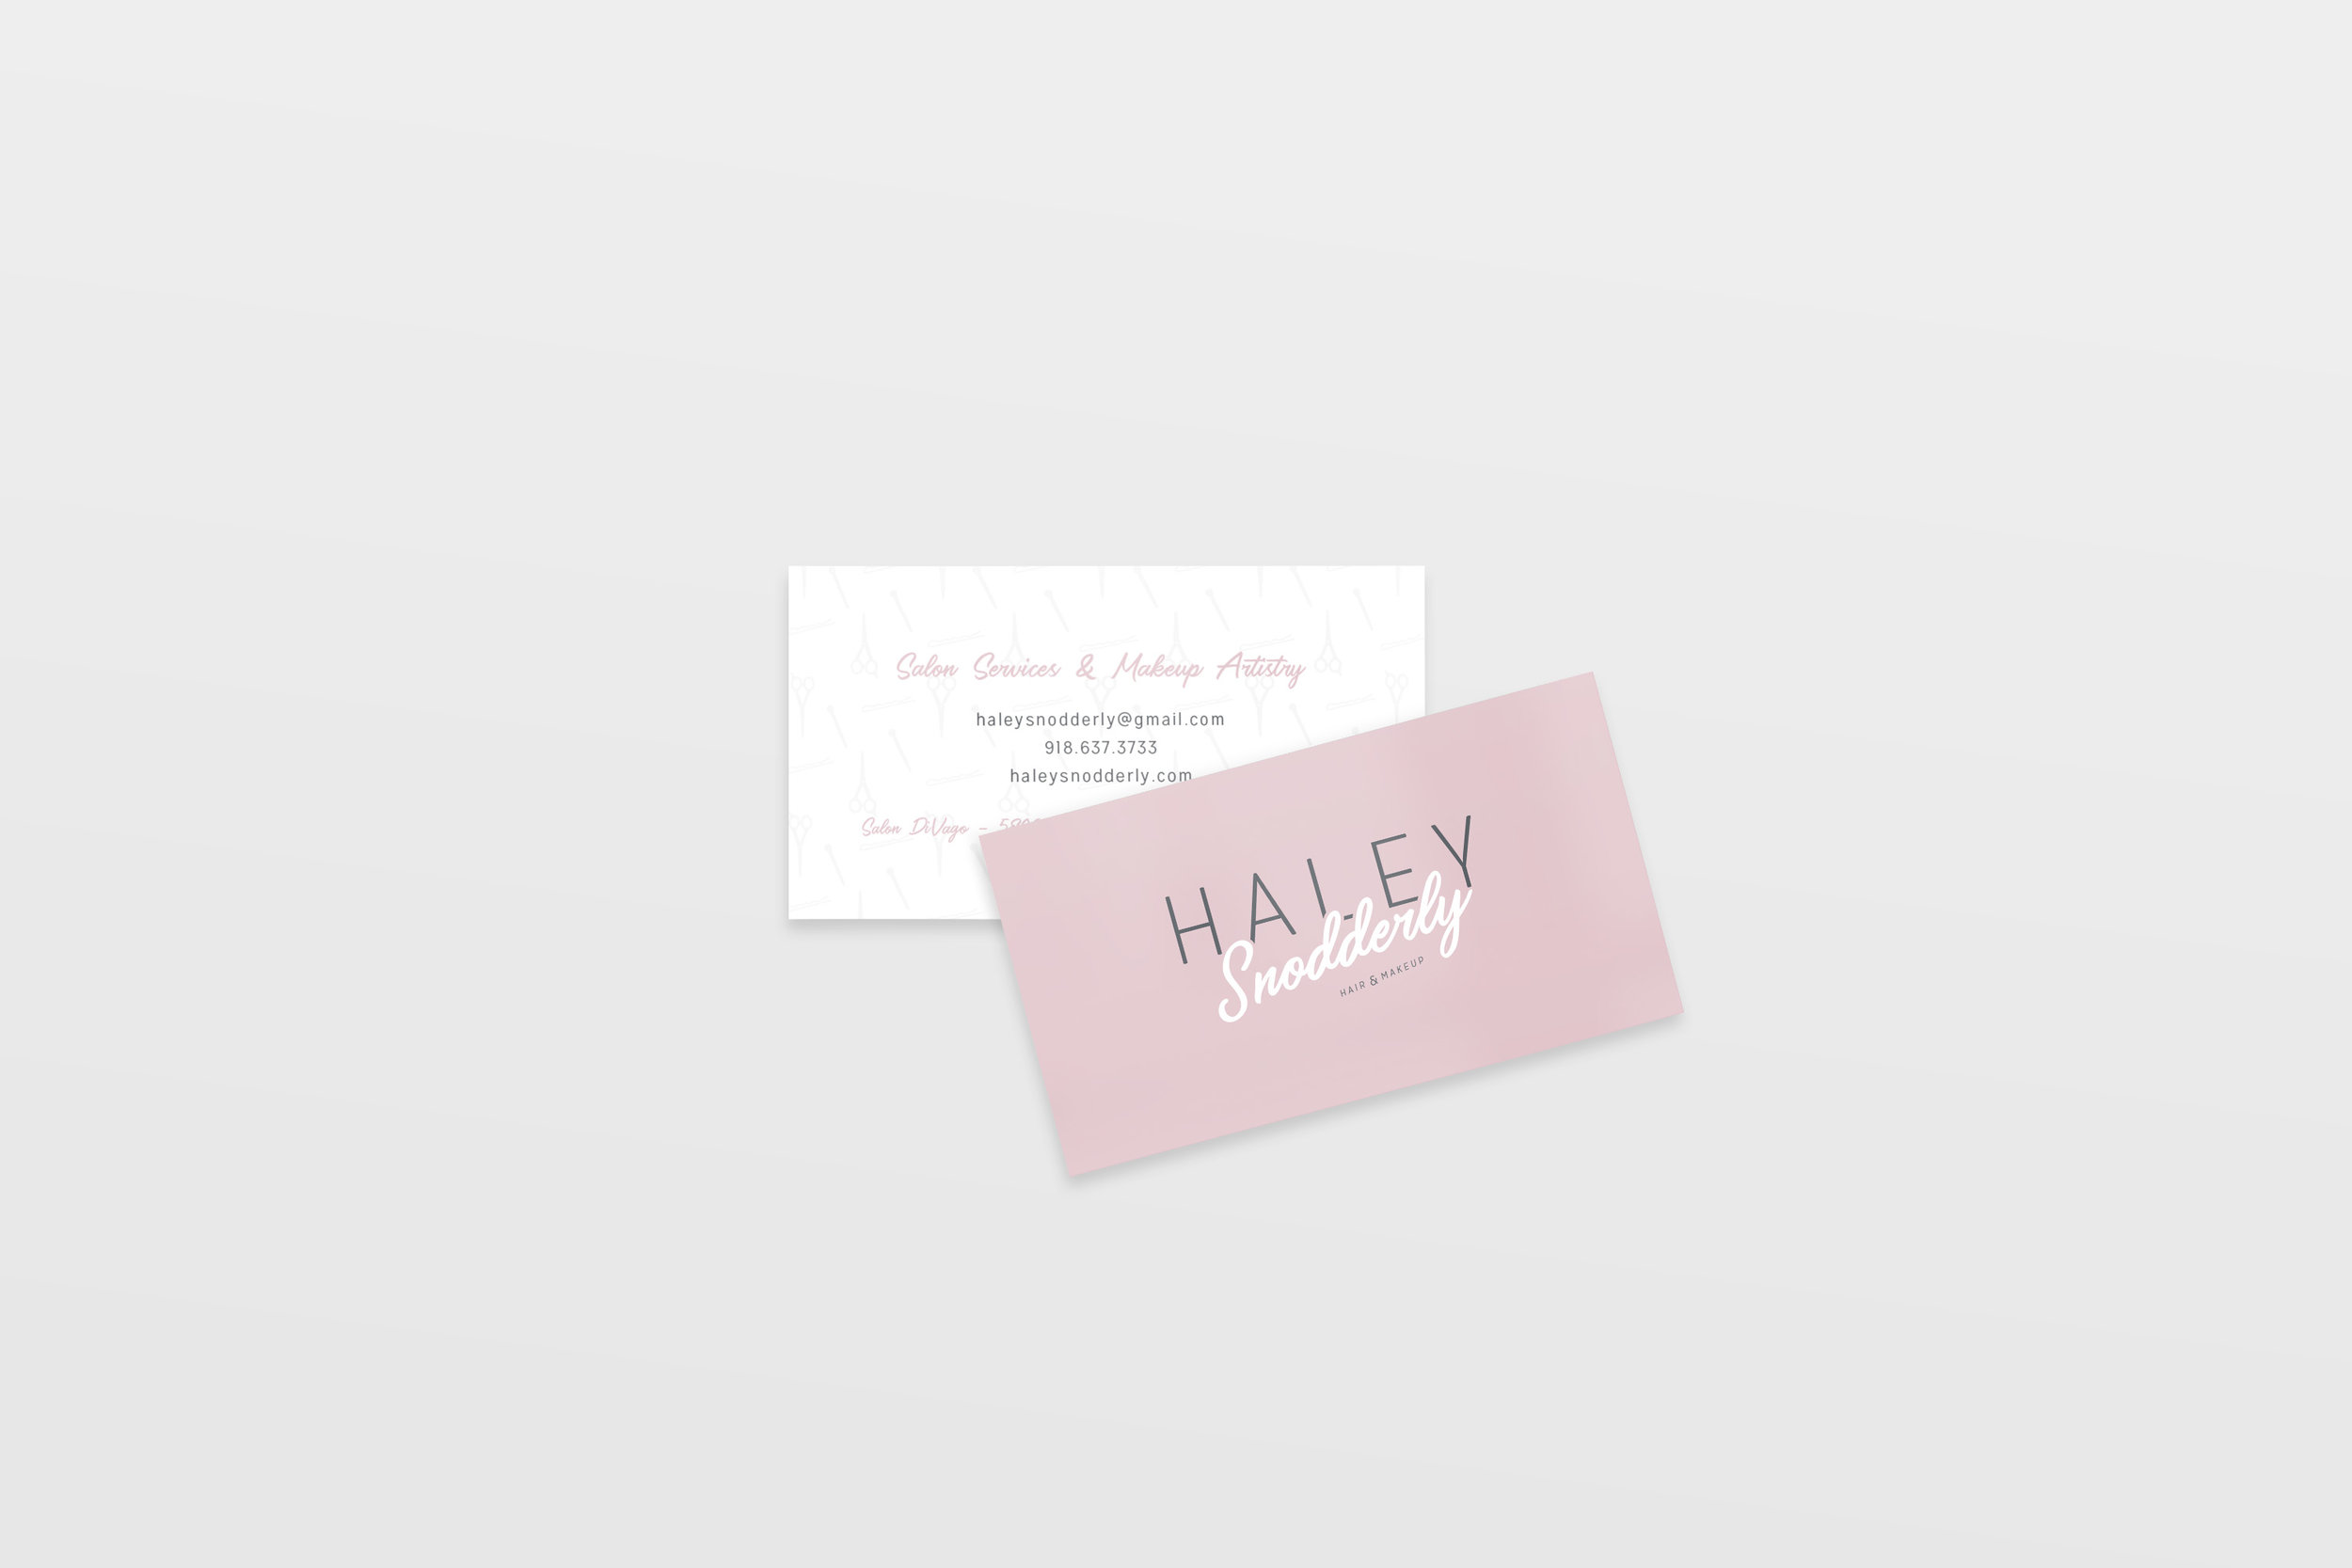 HaleySnoddery-Salon services business card-hair stylist-makeup artist-tulsa oklahoma-hayley bigham designs-graphic designer-brand designer tulsa